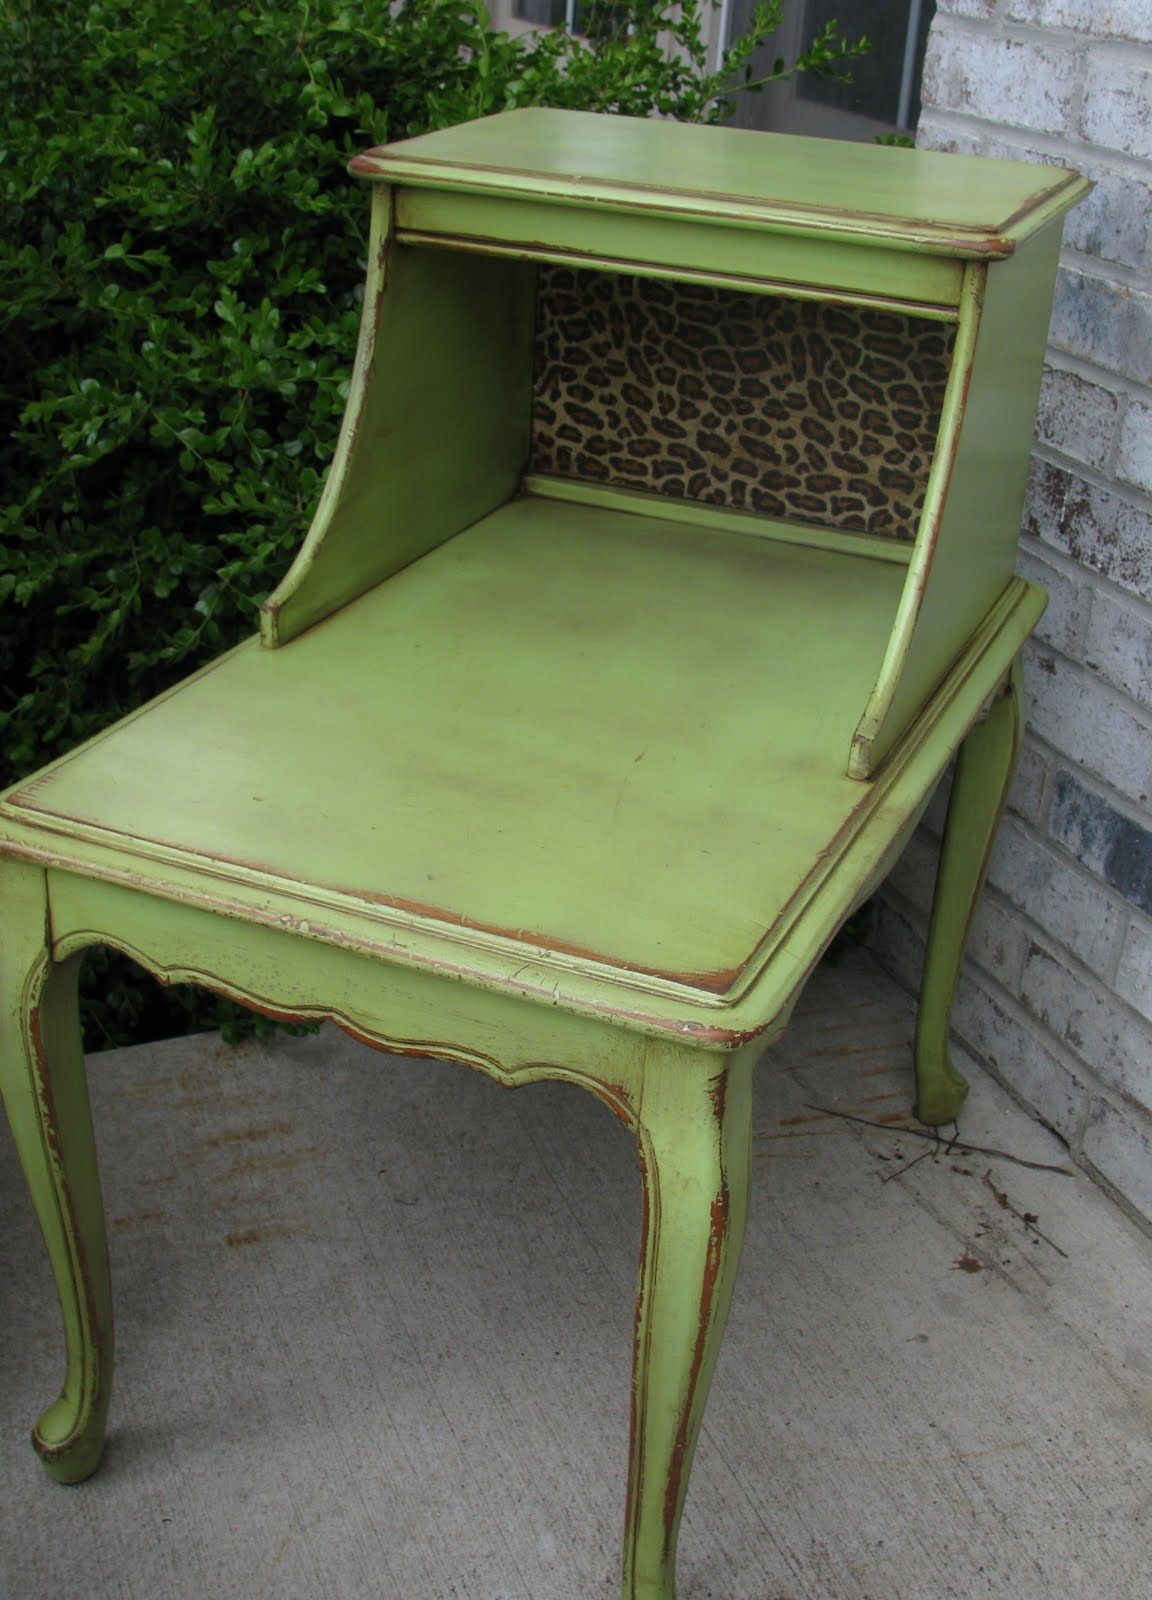 A Painted Green Side Table with a little peek of animal print ...